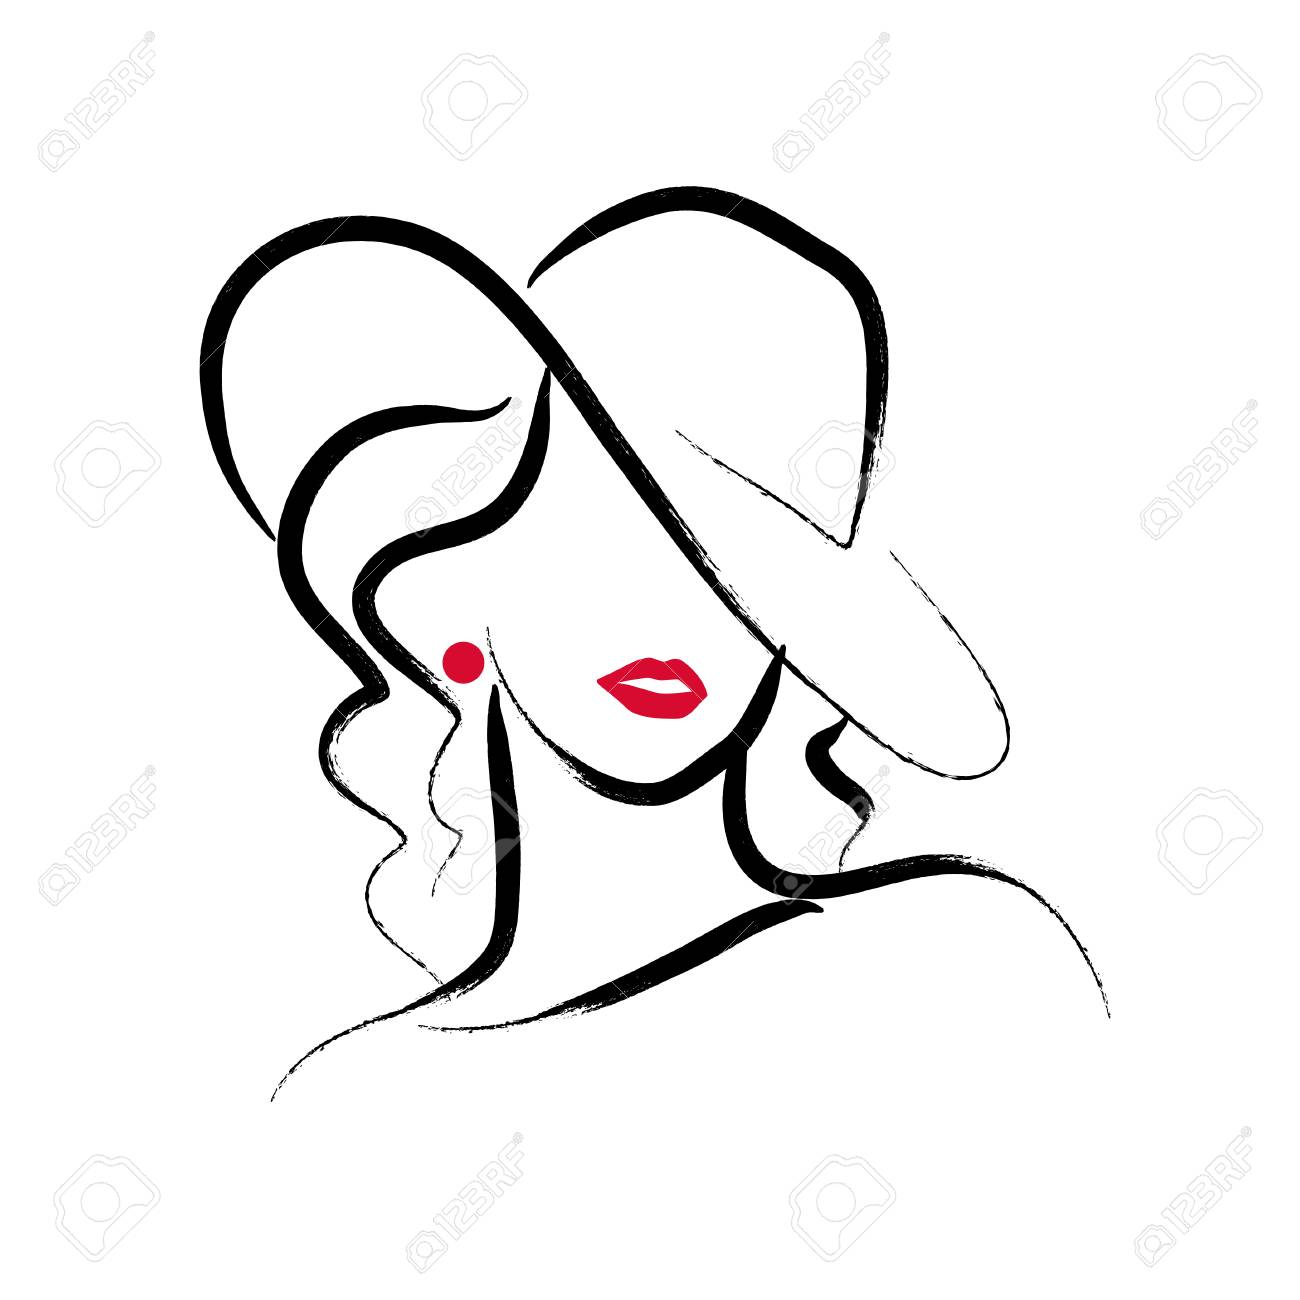 A Vector artistic hand drawn stylish young lady portrait isolated on white background. - 97781200